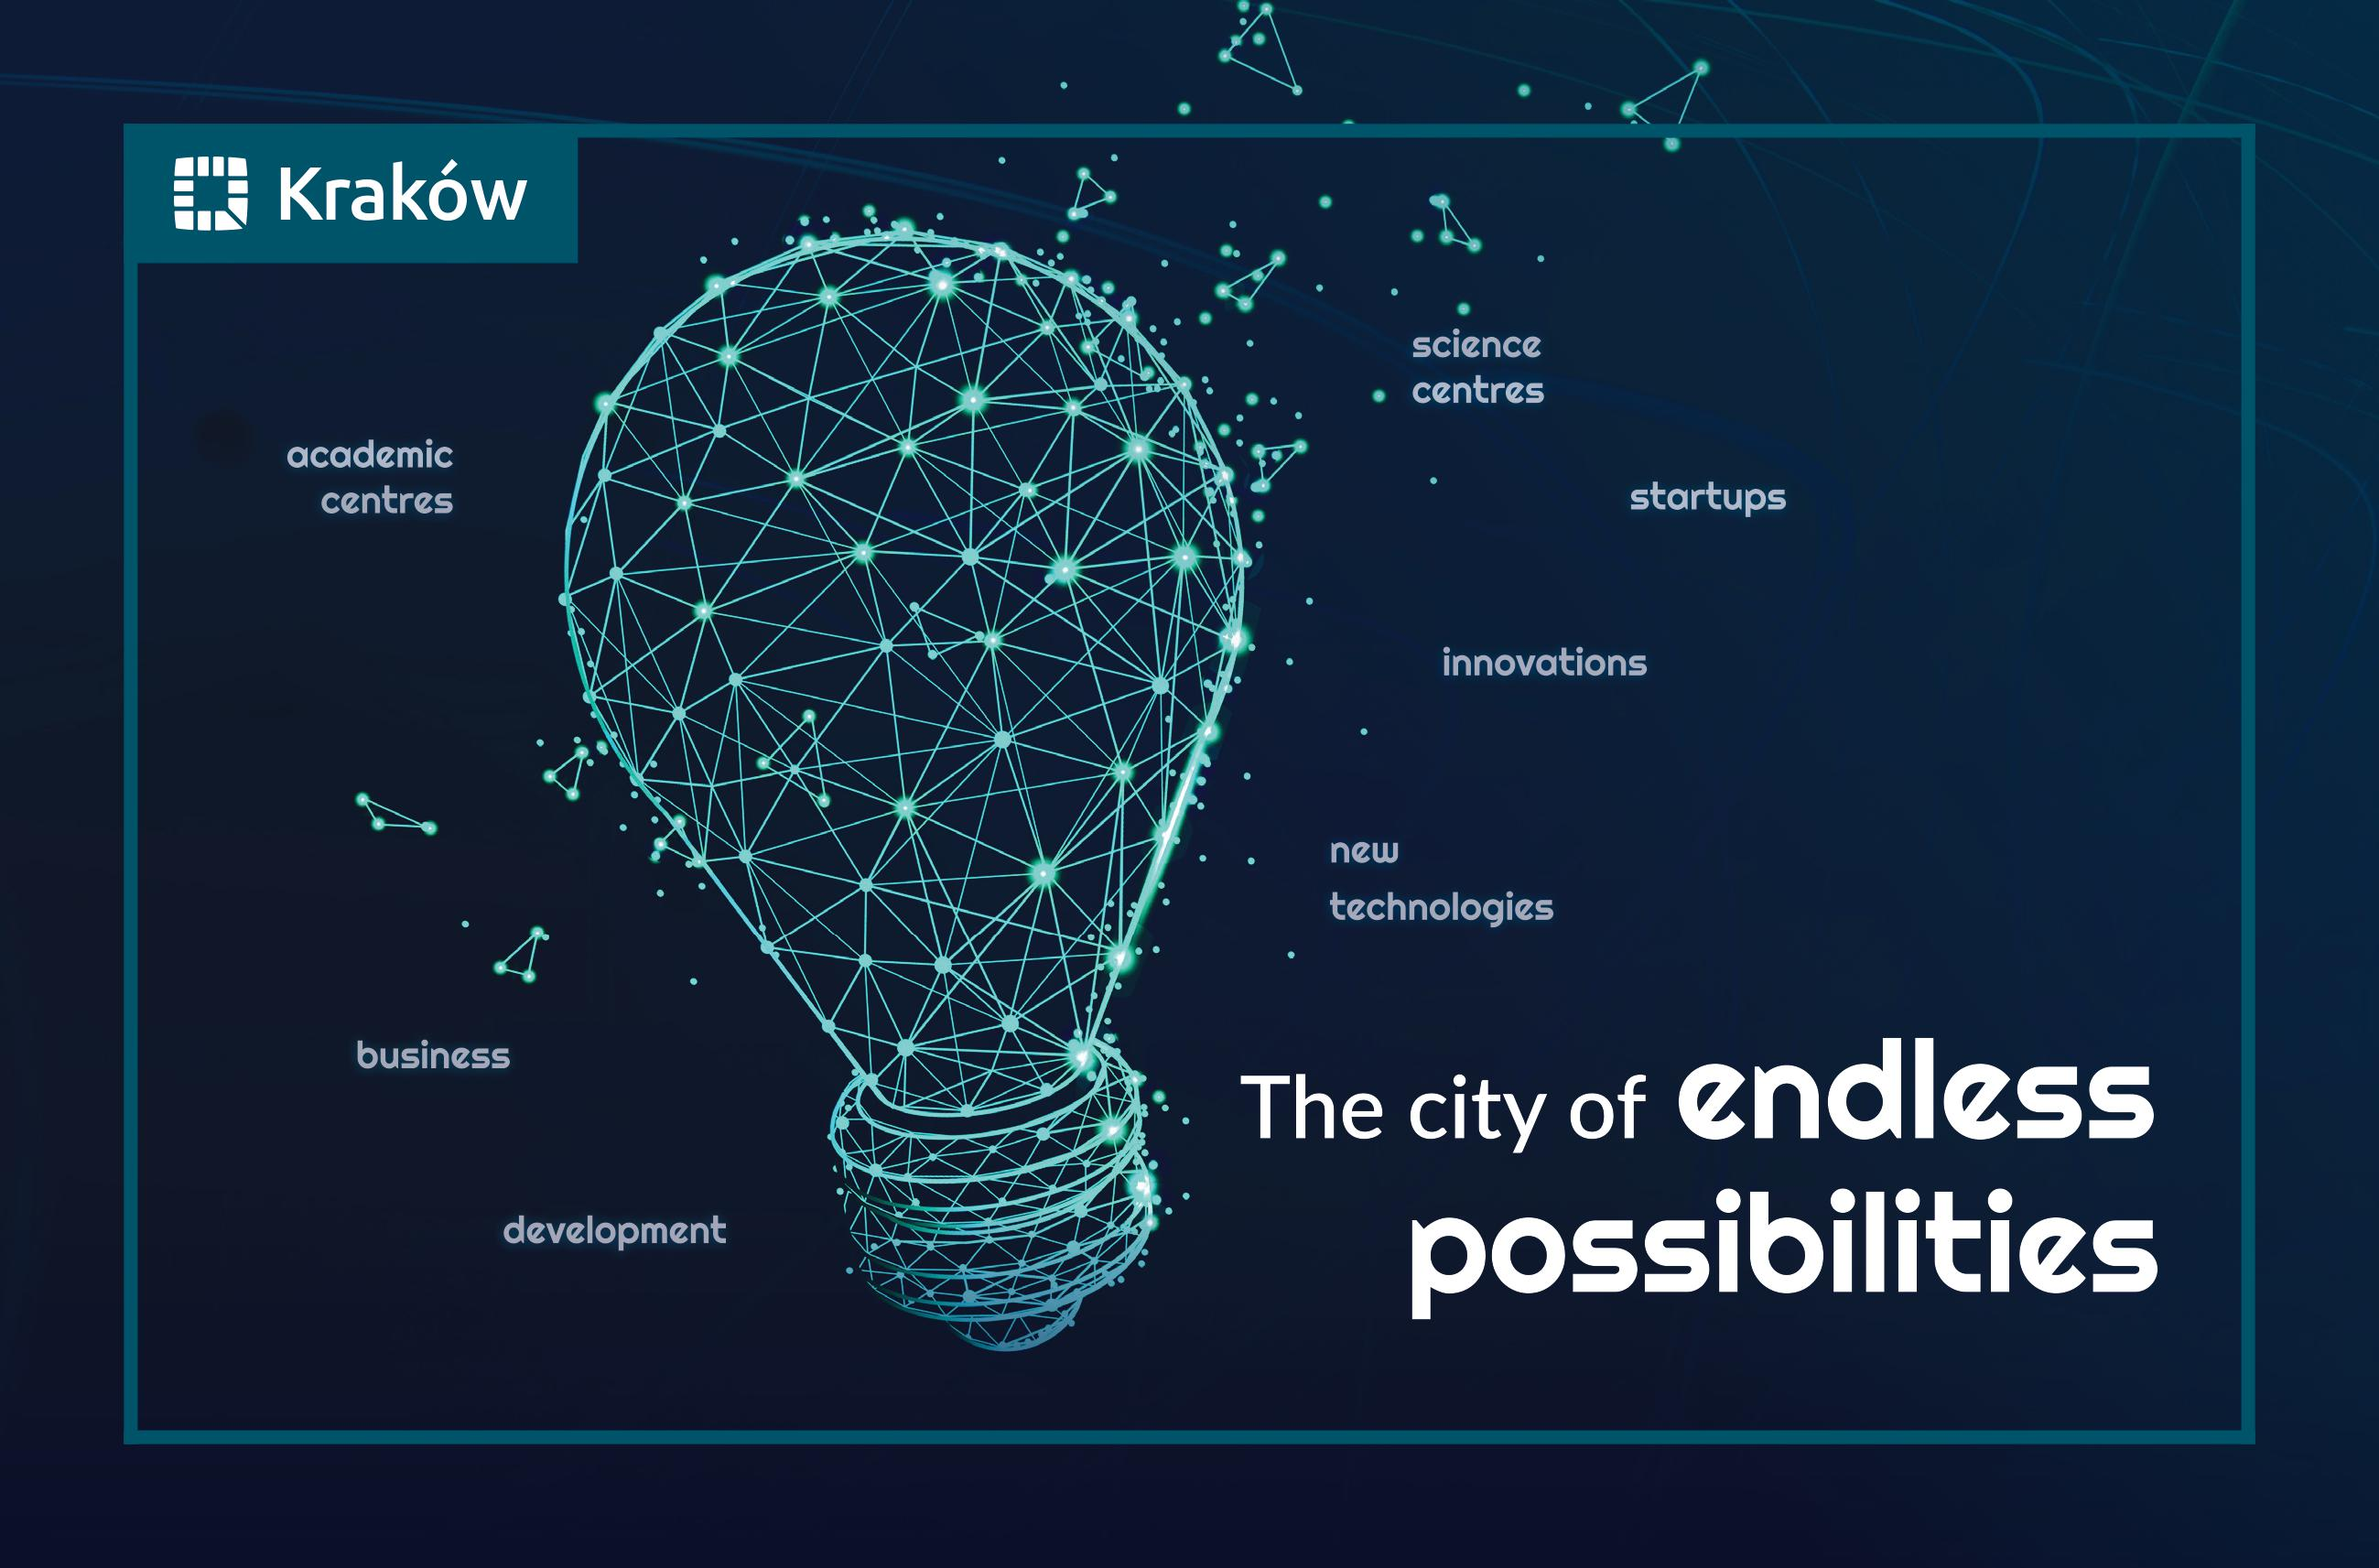 Cracow - the city of endless possibilities banner